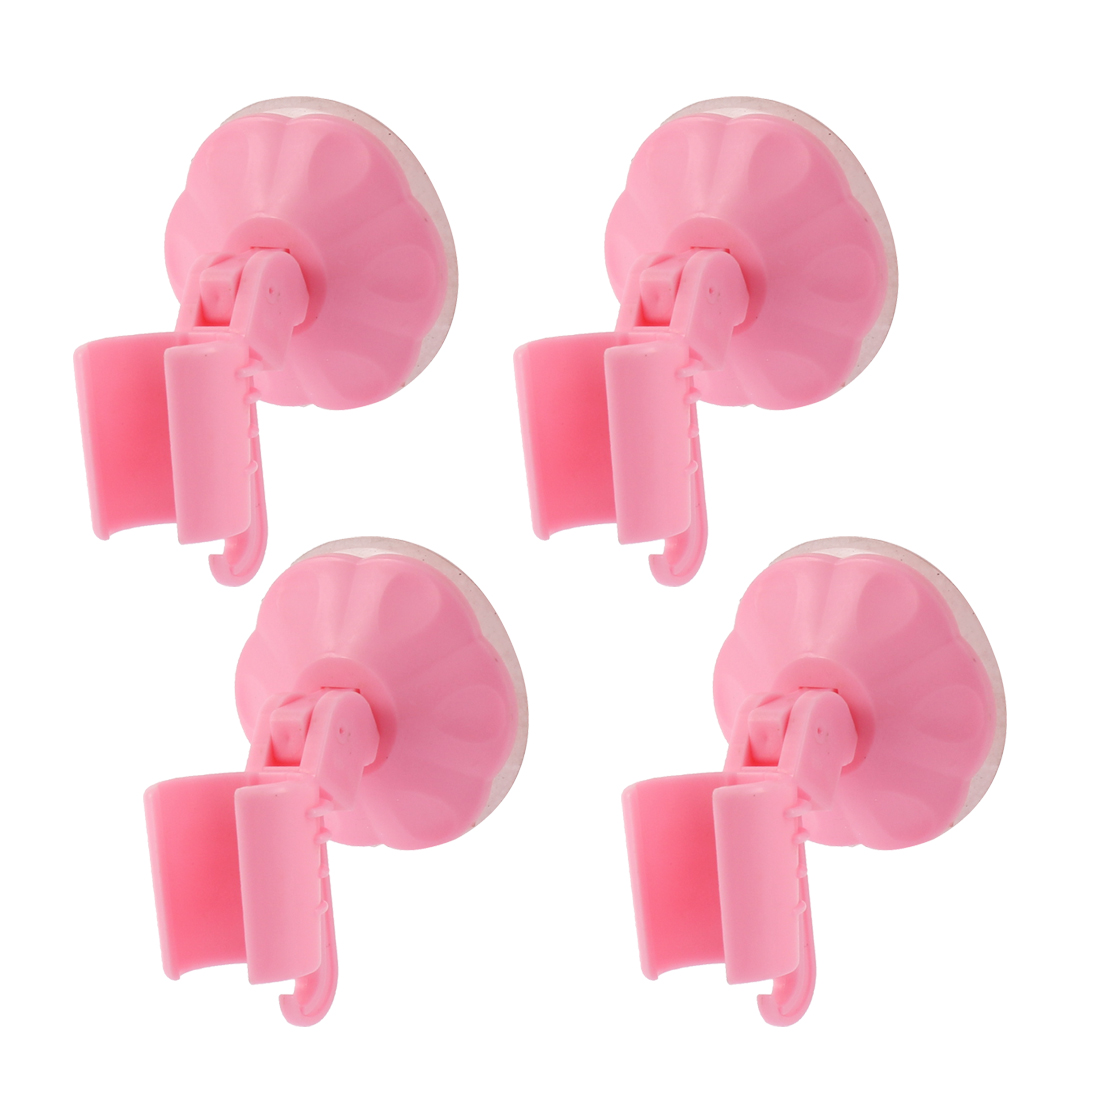 Unique Bargains 4 PCS Bathroom Wall Mounted Suction Cup Shower Head Holder Bracket